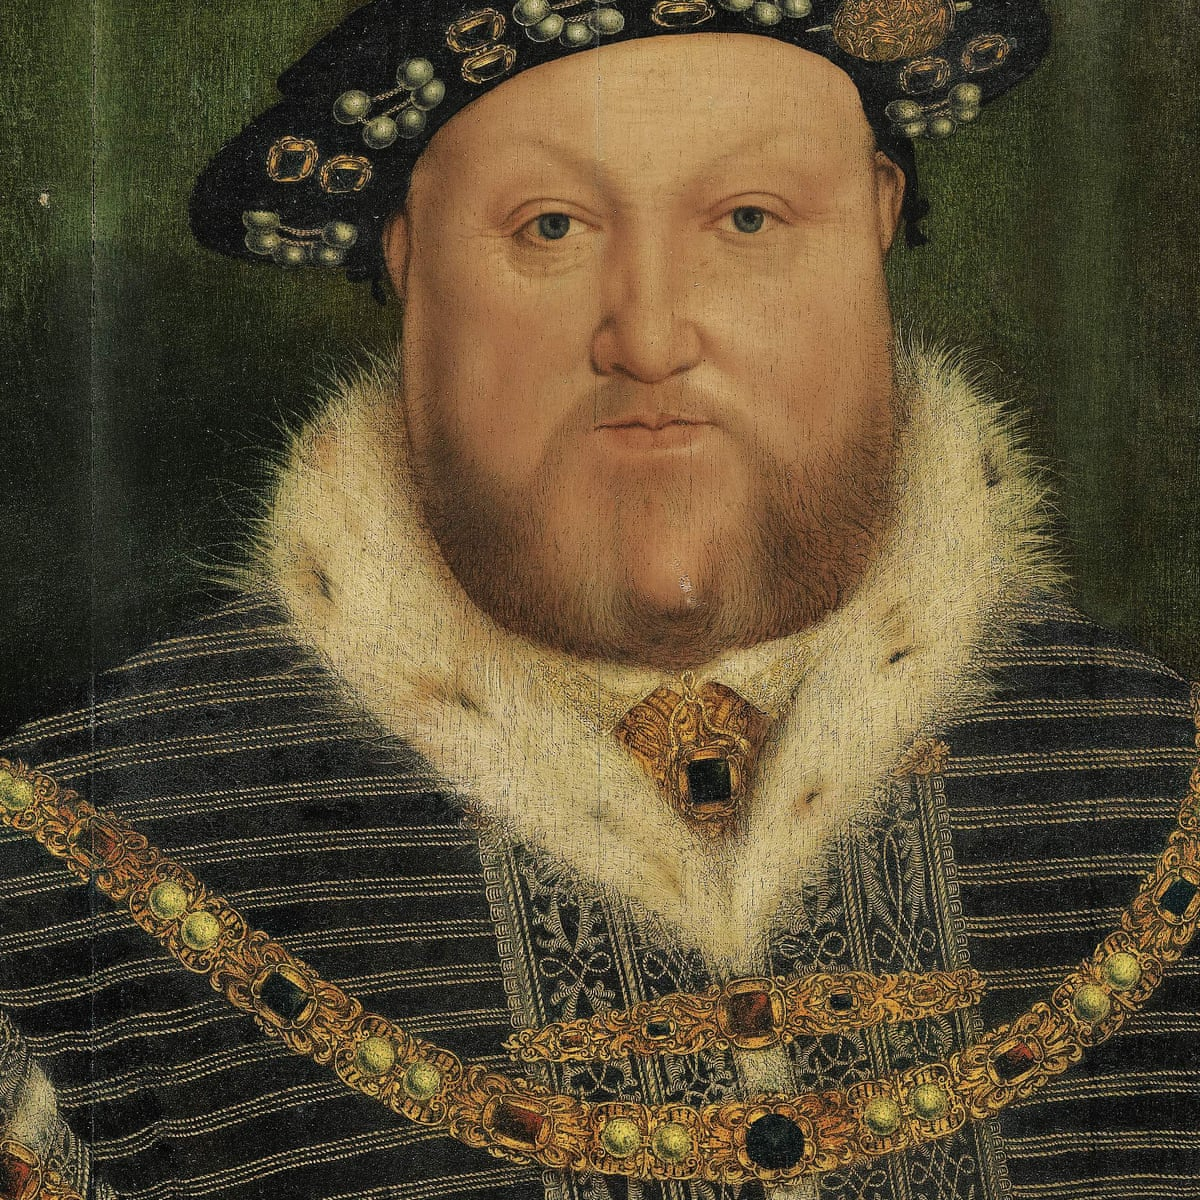 Henry VIII portrait: copy of Holbein painting expected to sell for £1m |  Painting | The Guardian